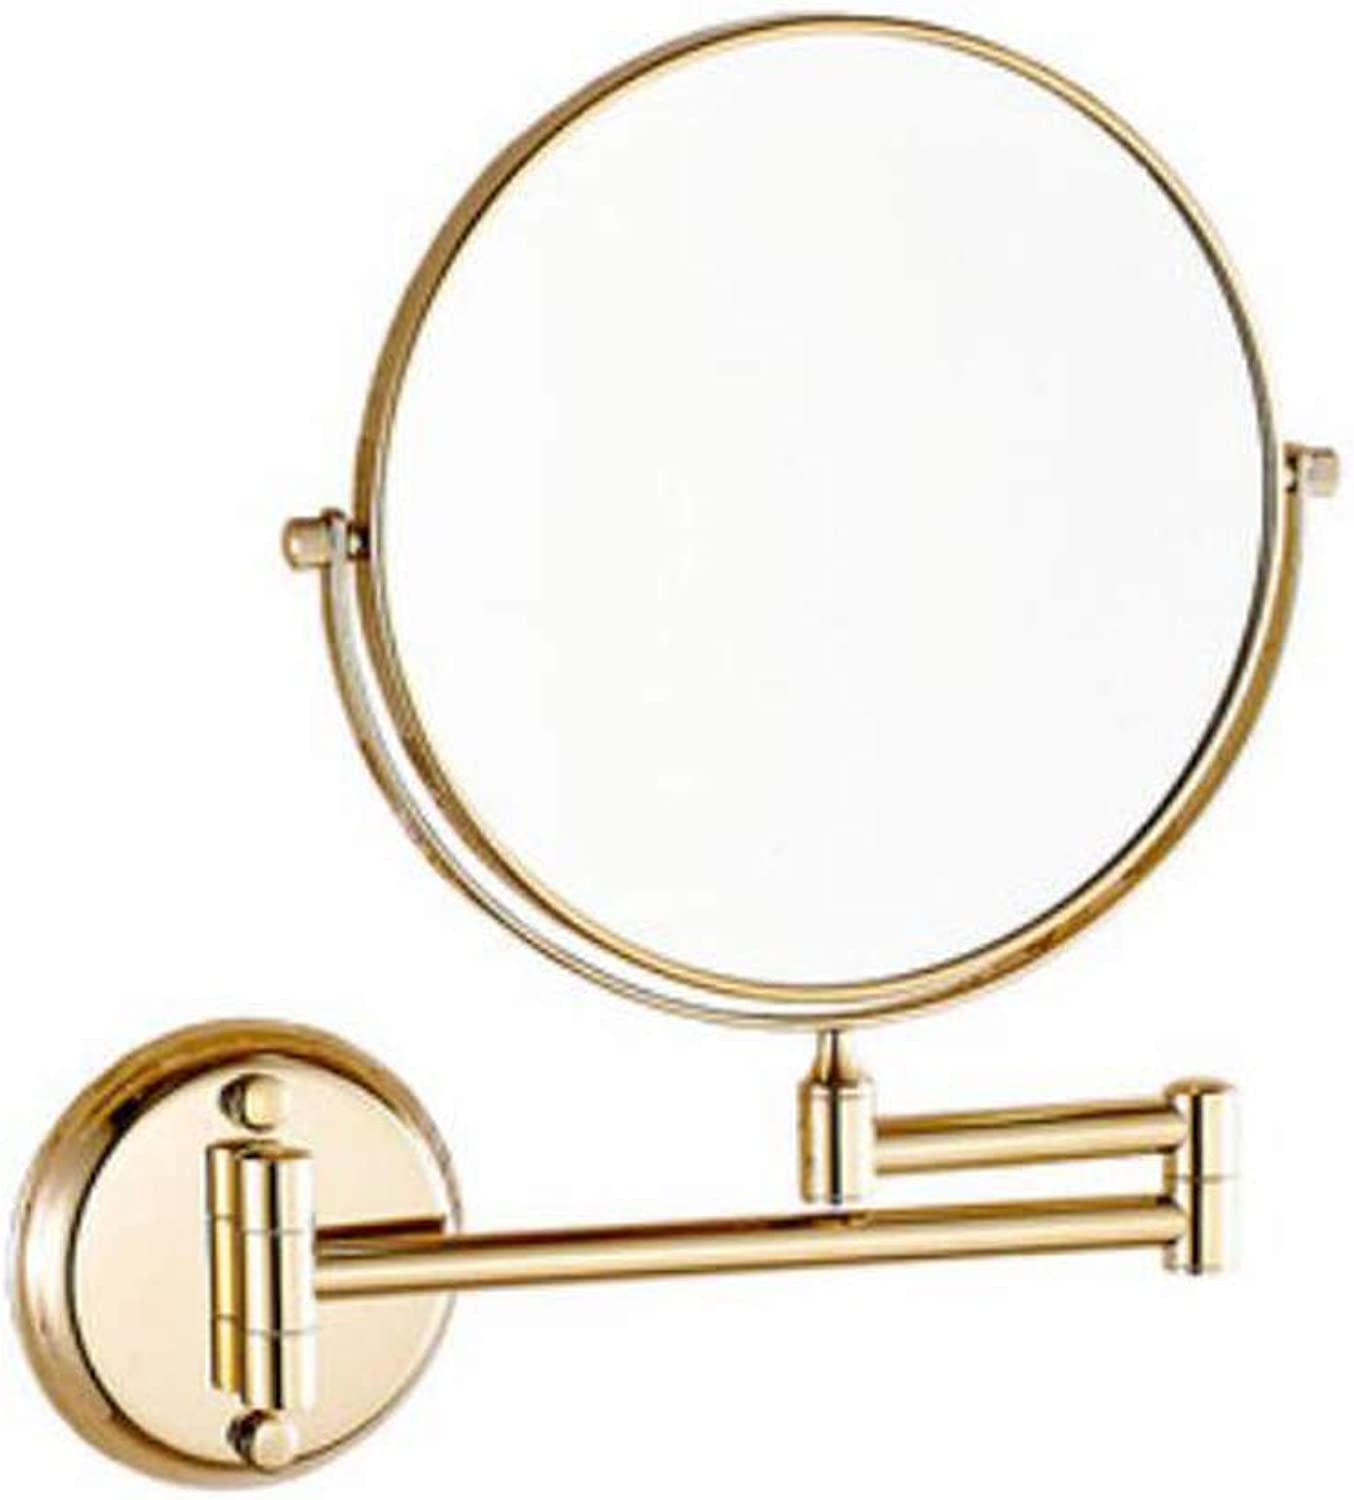 Bathroom Wall Hanging Folding Telescopic Double-Sided Magnification Makeup Mirror (Silver, gold) (color   gold)